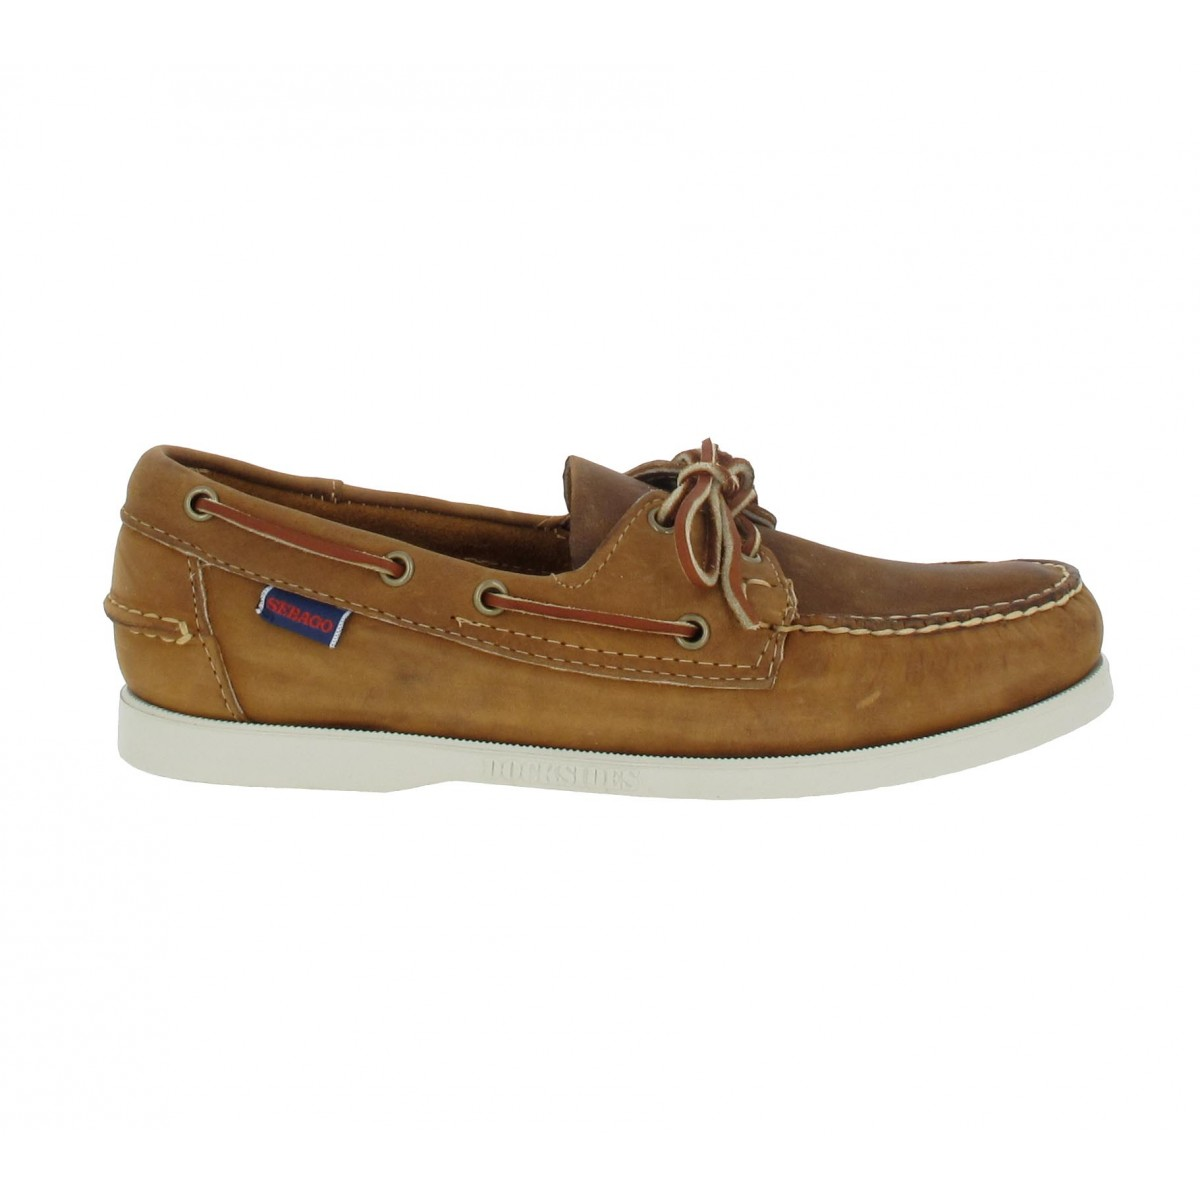 Sebago Docksides Cuir Homme Brun Fanny Chaussures